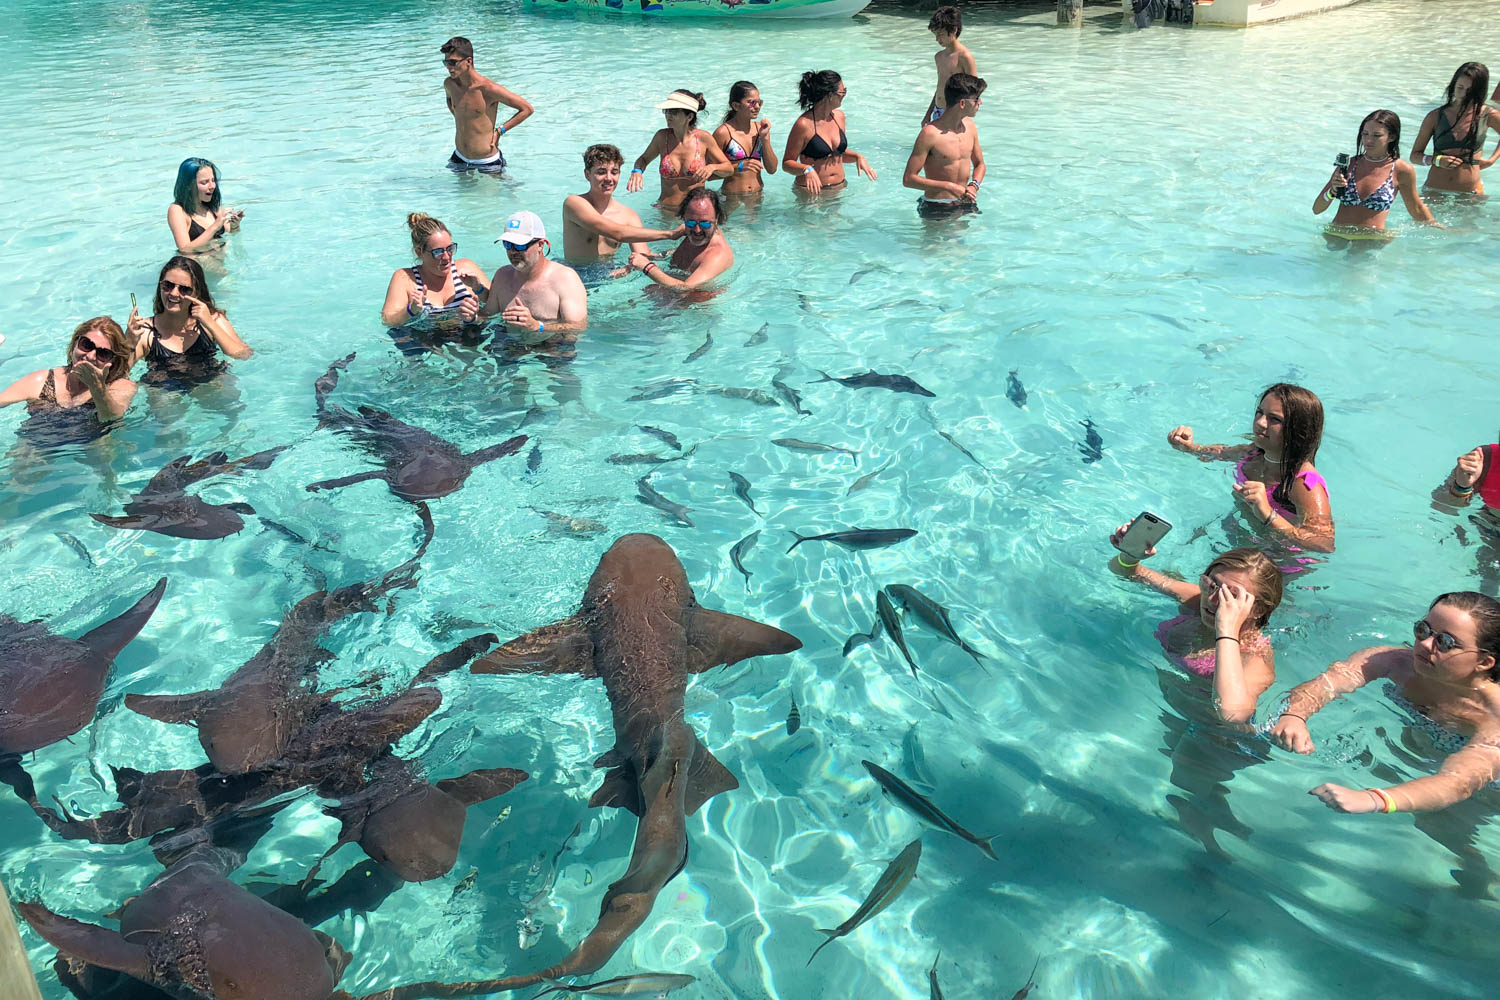 Day trips to Bahamas often include a visit to Compass Cay to swim with sharks. A boat from Fort Lauderdale to Bahamas leaves every day in the morning. Captured on a day trip to Bahamas from Fort Lauderdale.